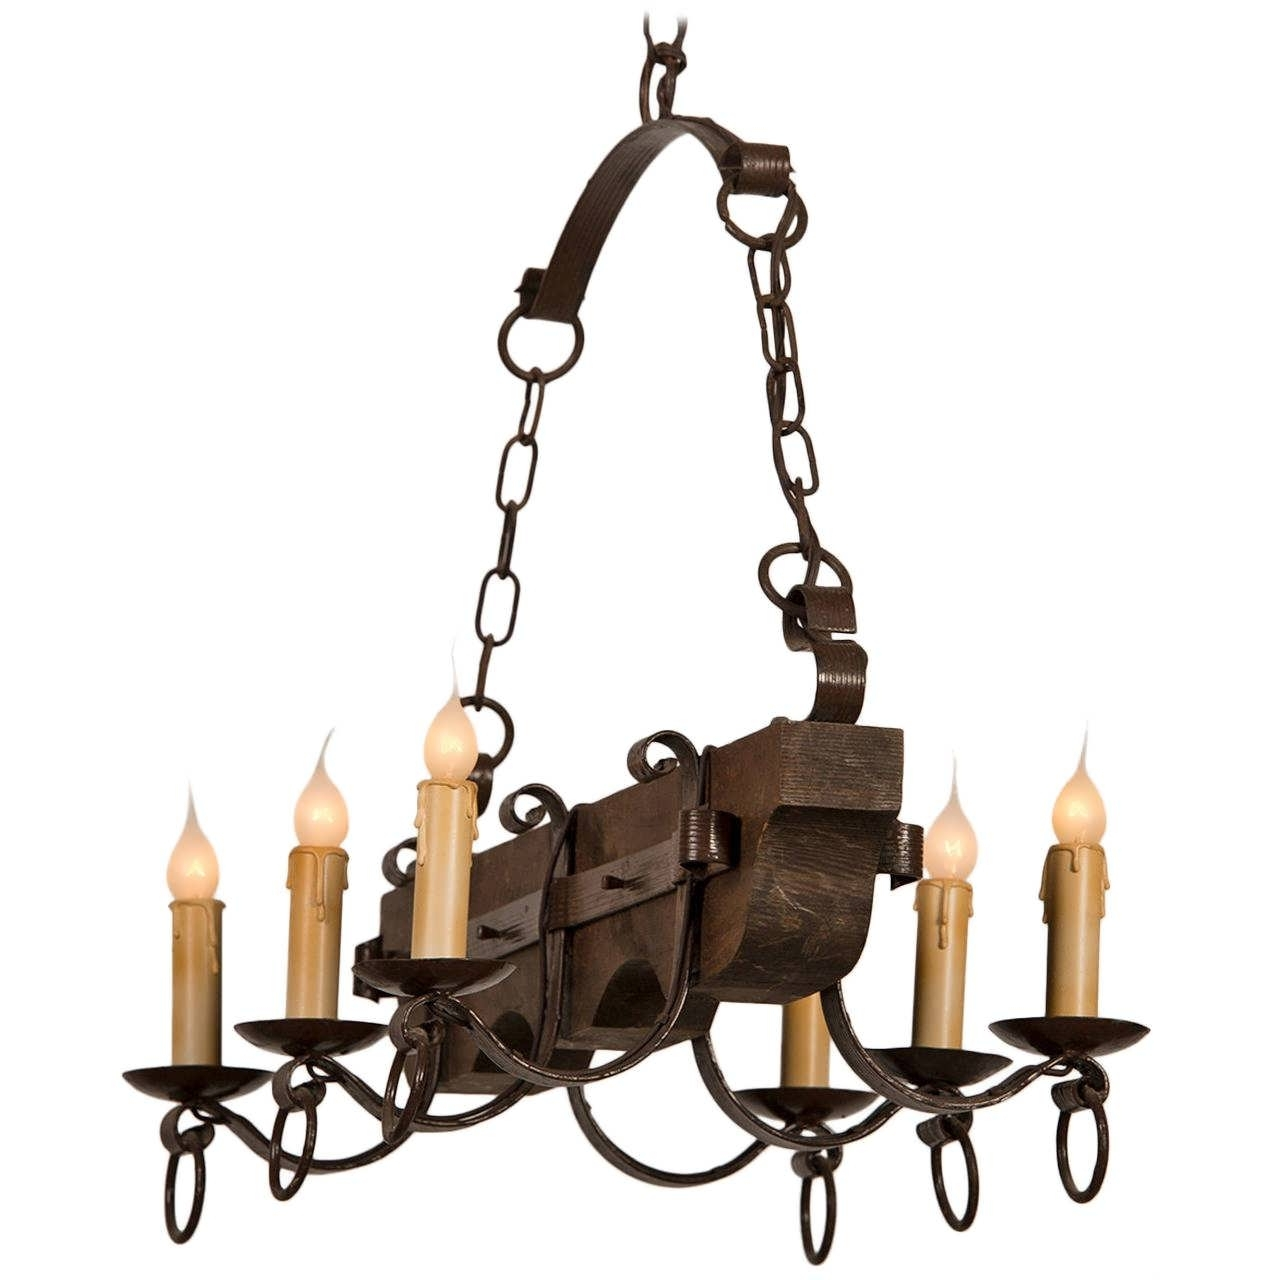 Chandeliers Design : Wonderful Wrought Iron Chandeliers Rustic For Preferred Small Rustic Crystal Chandeliers (View 4 of 20)